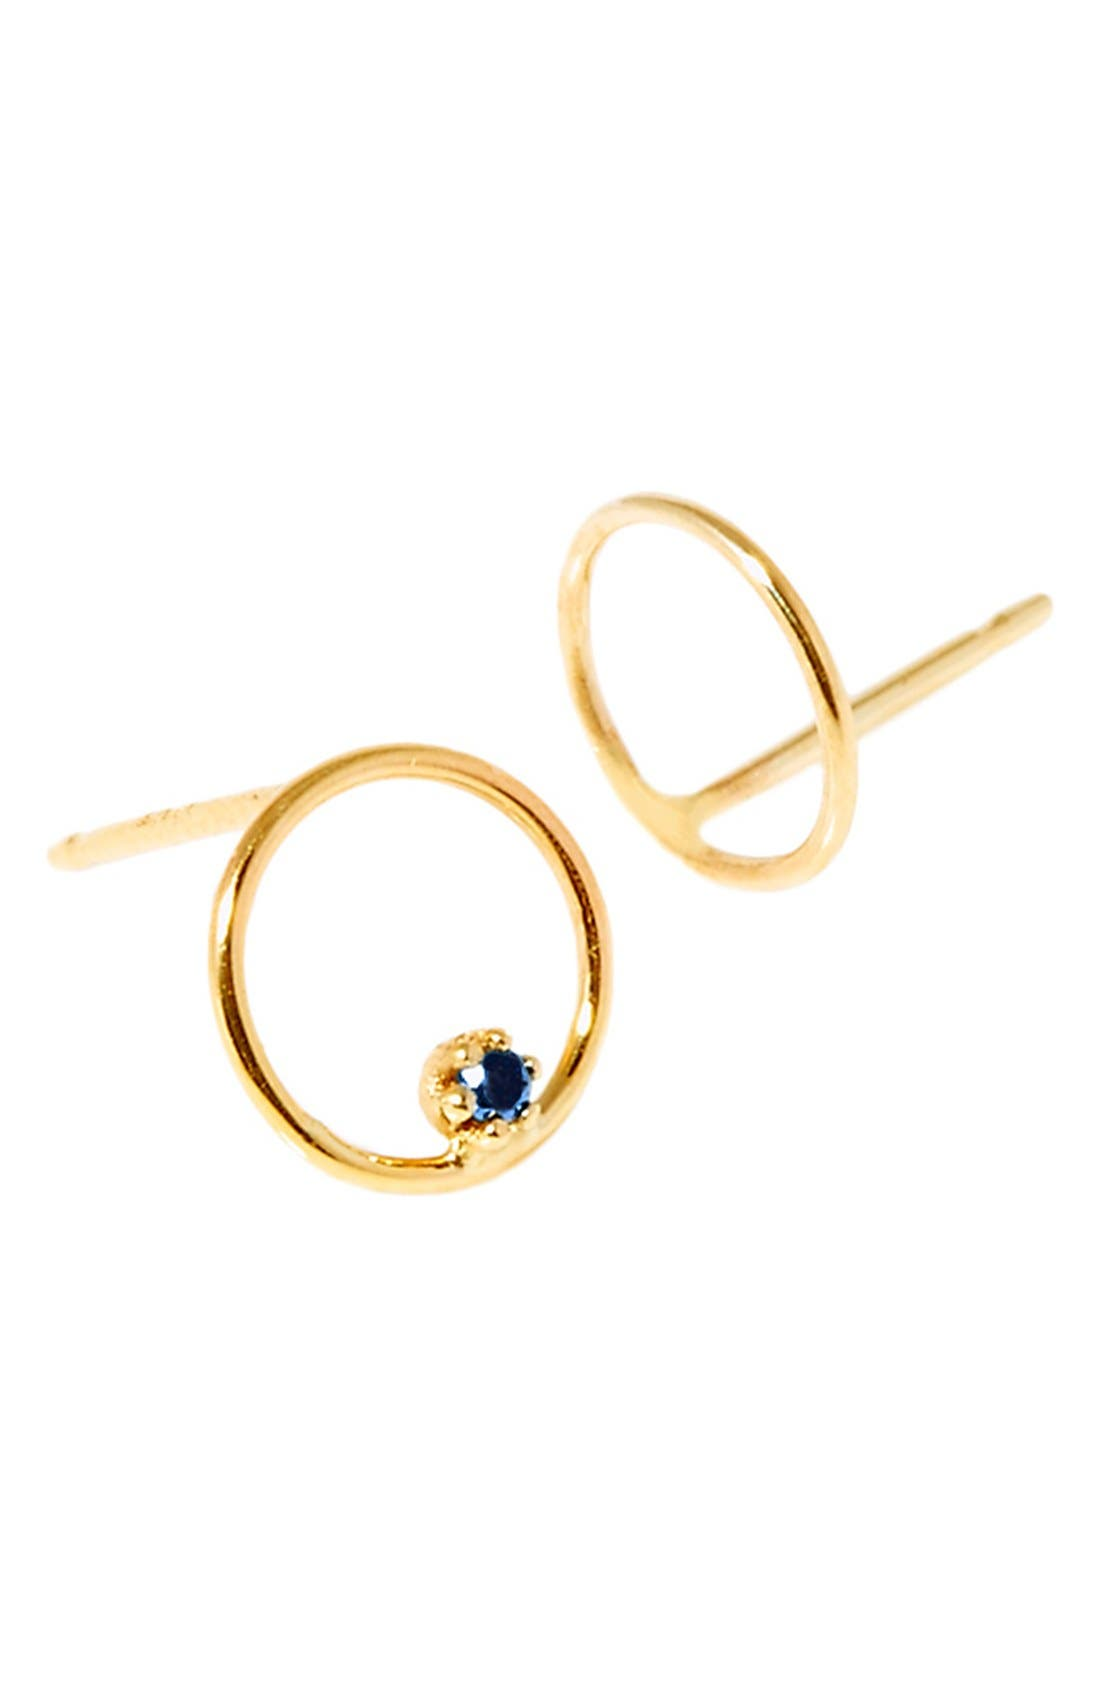 SARAH & SEBASTIAN 'Stone Bubble' Mismatched Gold & Sapphire Earrings